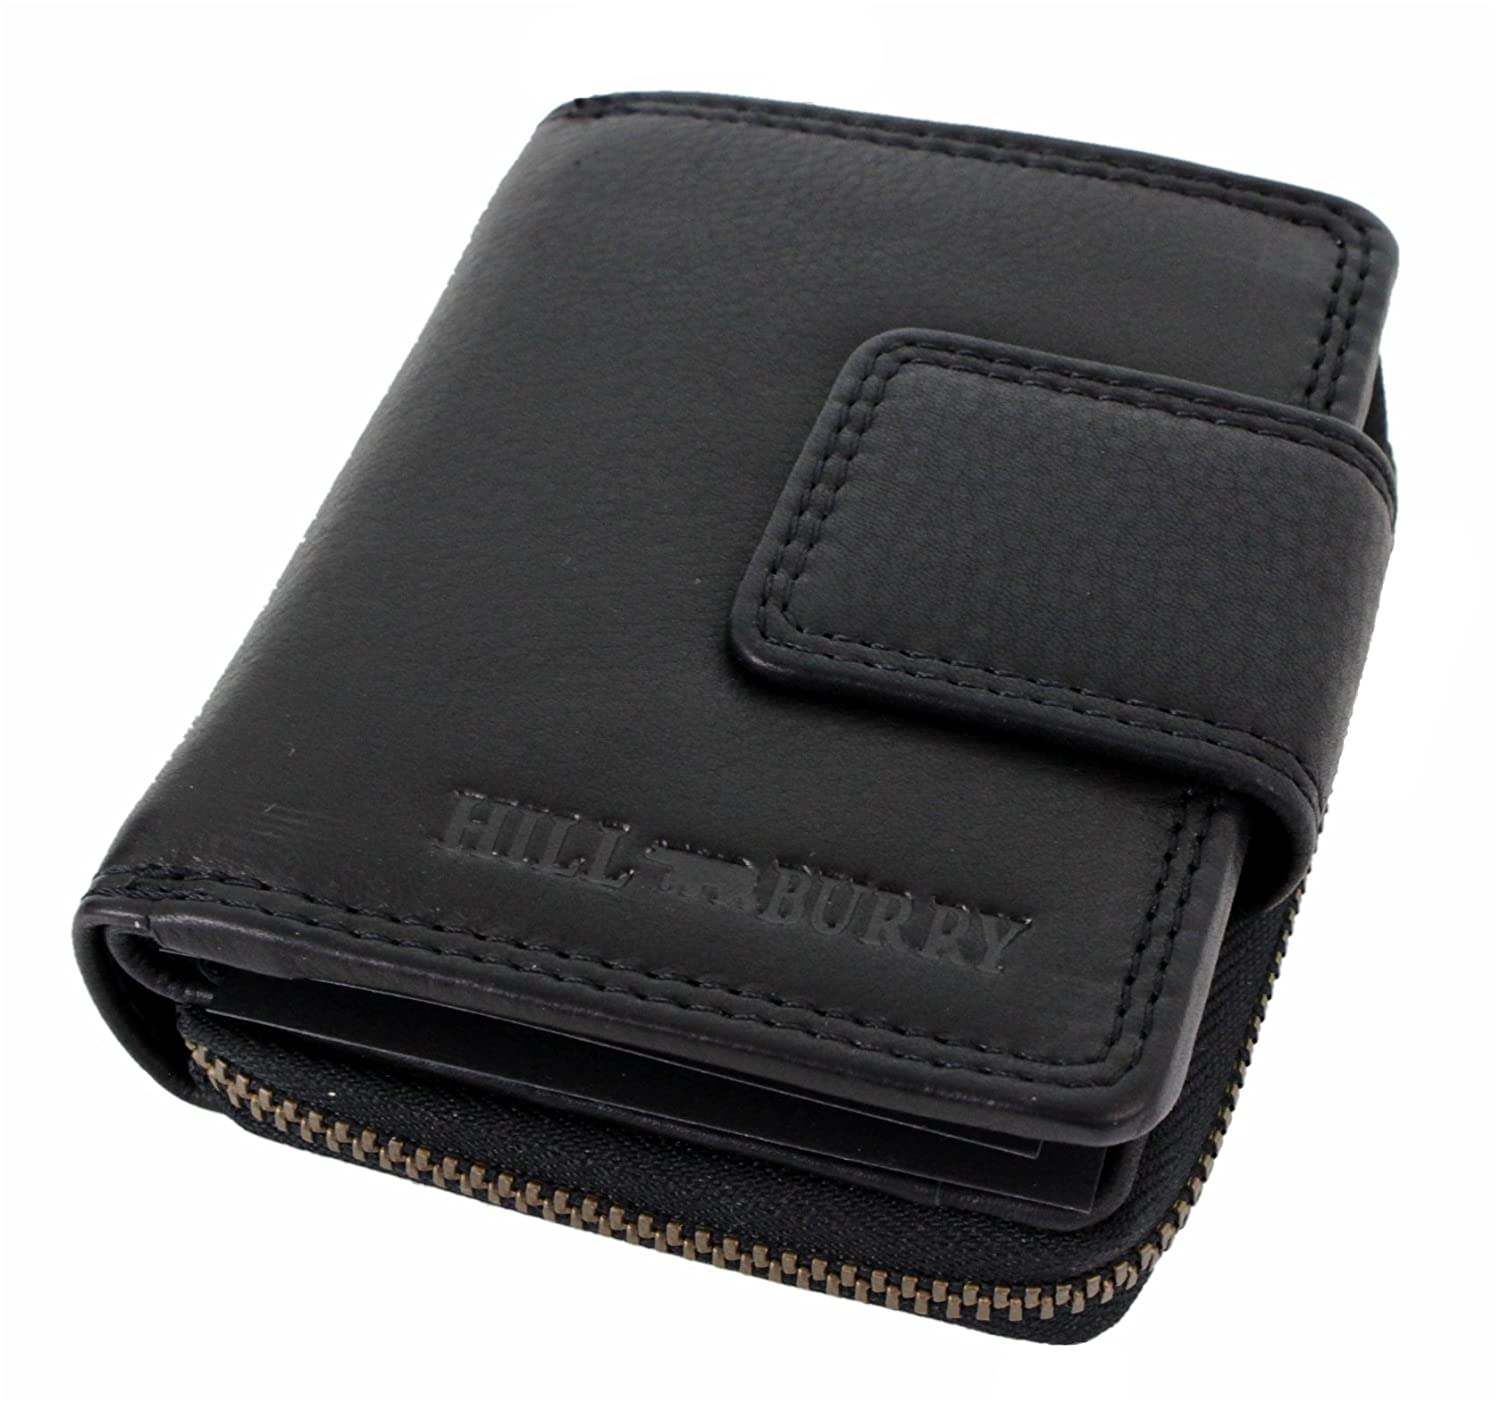 Genuine Leather Wallet for Men Women small Handmade Bifold compact Wallets ID Card Holder with coin pocket black Houston